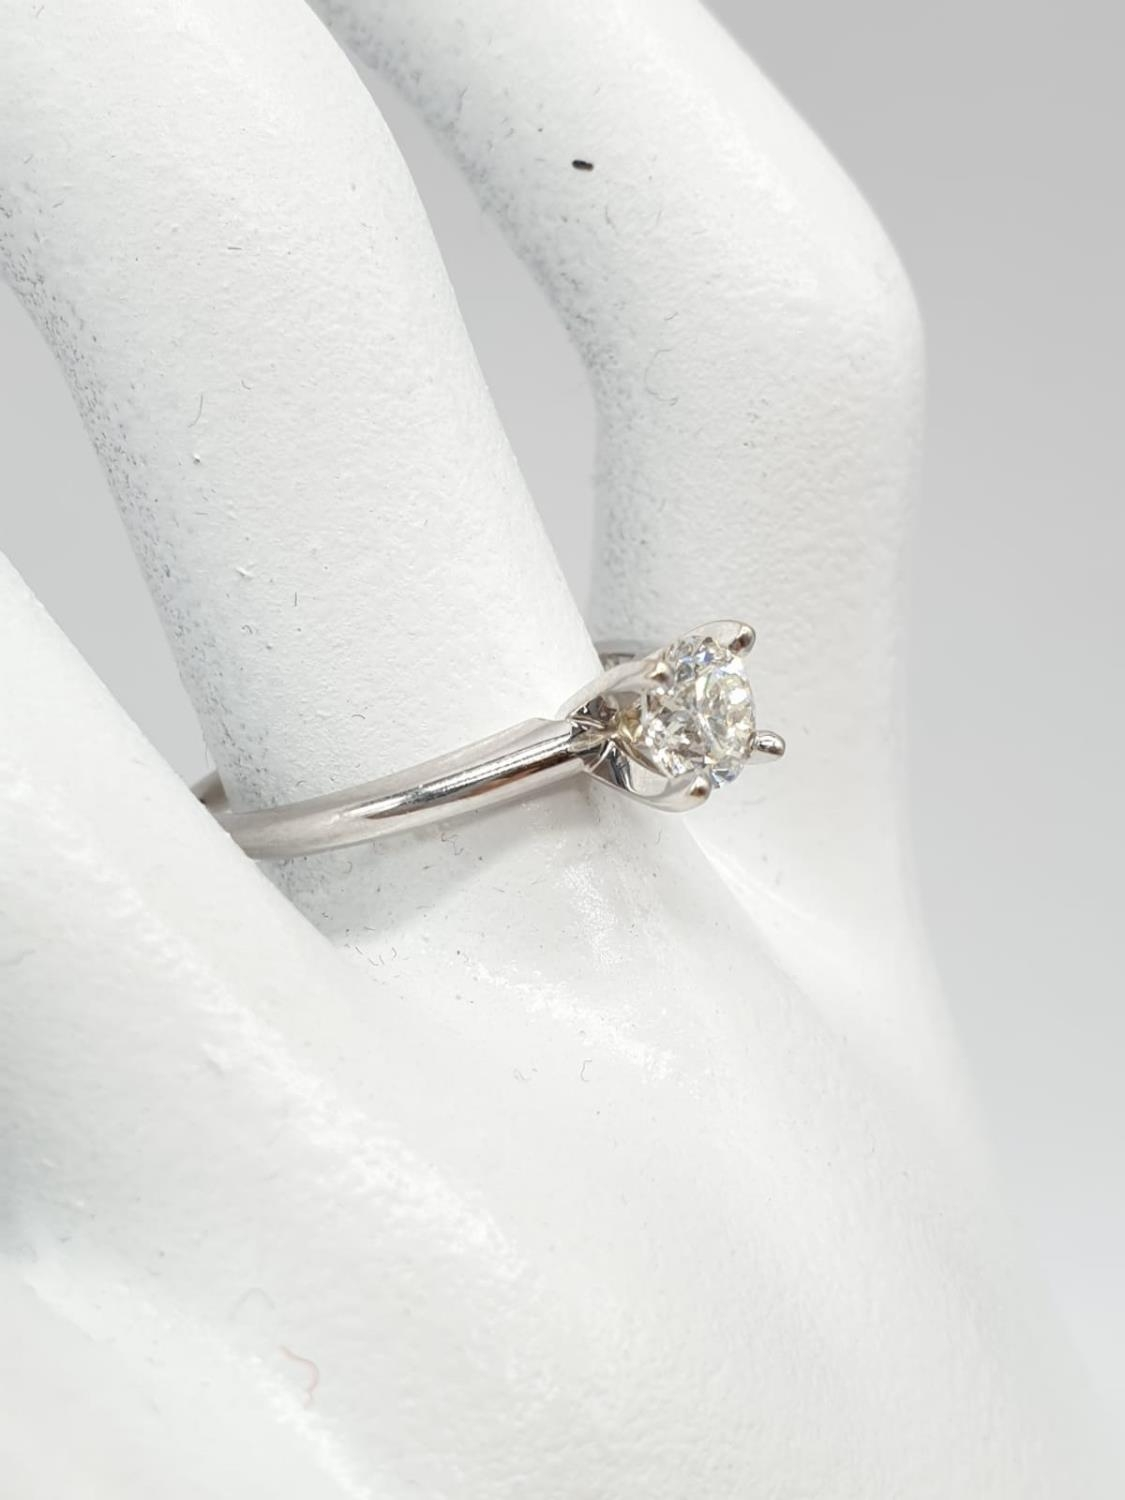 14ct white gold with 0.56ct diamond solitaire ring (round brilliant cut, colour H, clarity SI1 - Image 2 of 18